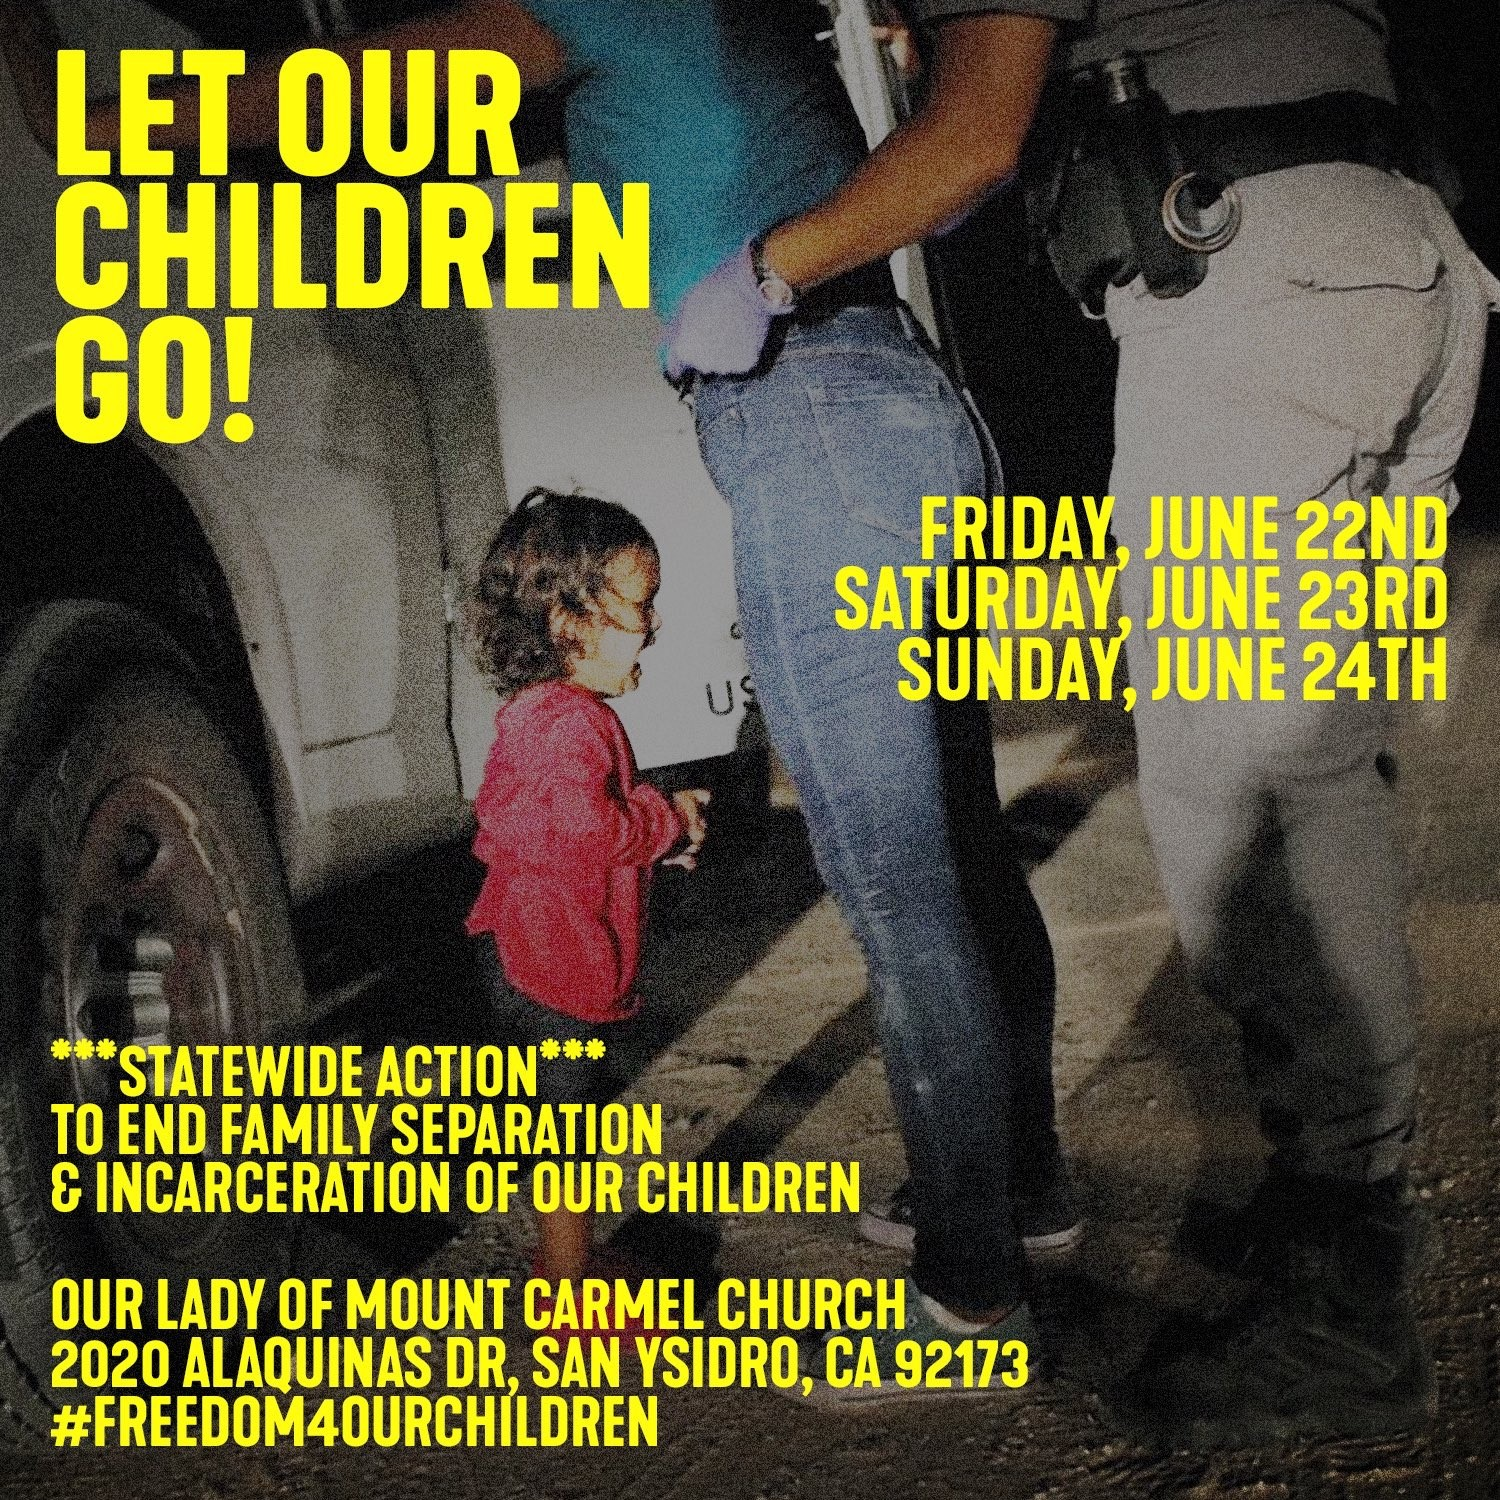 Let Our Children Go! A Weekend of Action to End Family Separation